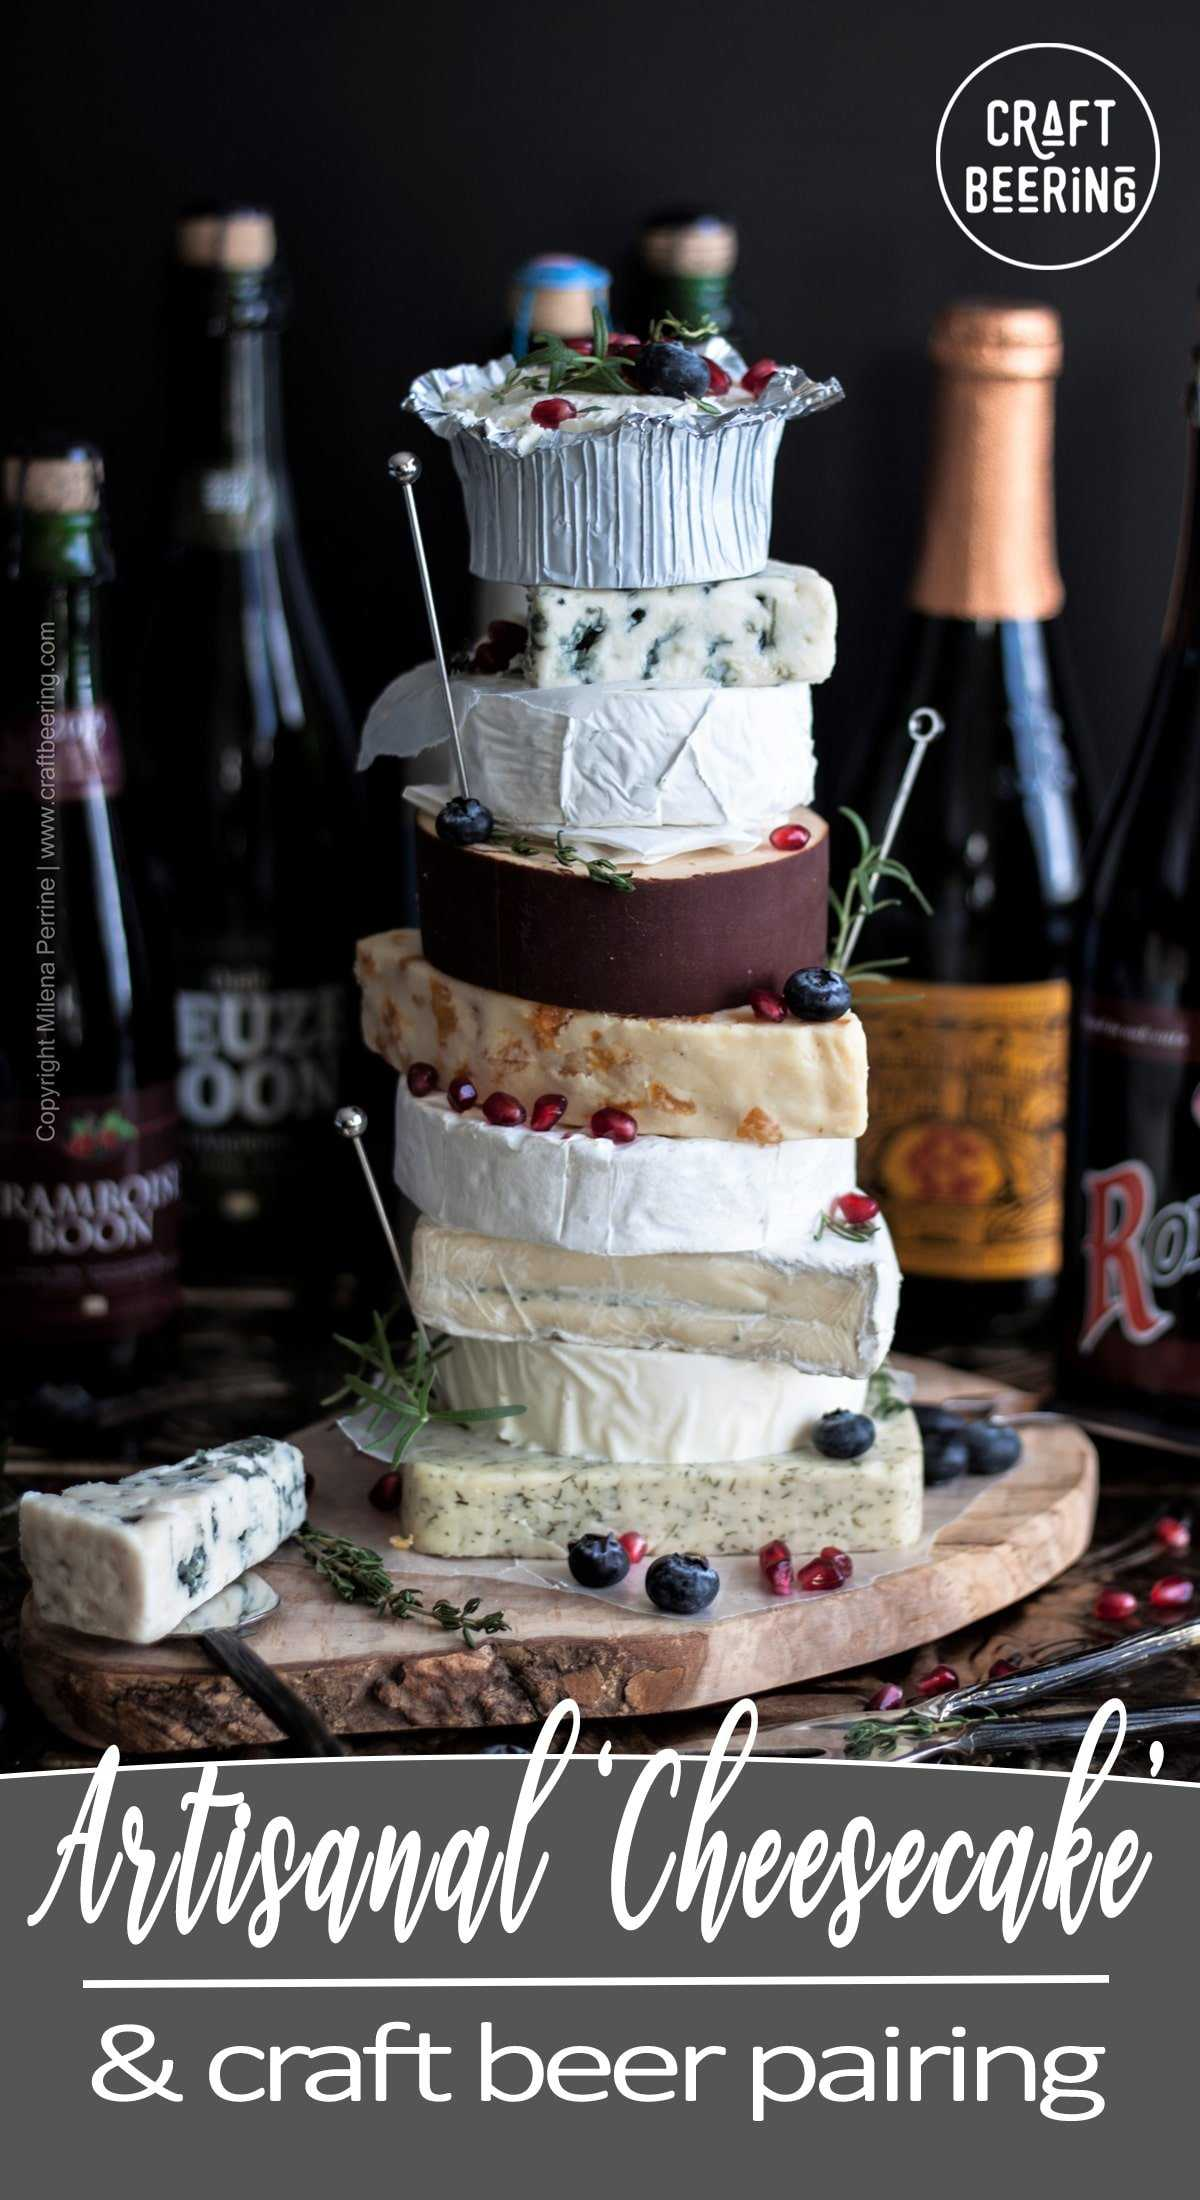 Cheesecake and Beer Pairing. Not the kind of cheesecake you'd expect, but a pretty good one in its own right:) A cake entirely made of cheese and paired with craft beer. The best kind of beer and cheese pairing. #beerandcheese #pairbeerandcheese #cheesepairing #beercheesecake #cheesecakebeer #cheesecake #craftbeer #belgianbeer #craftbeerandcheese